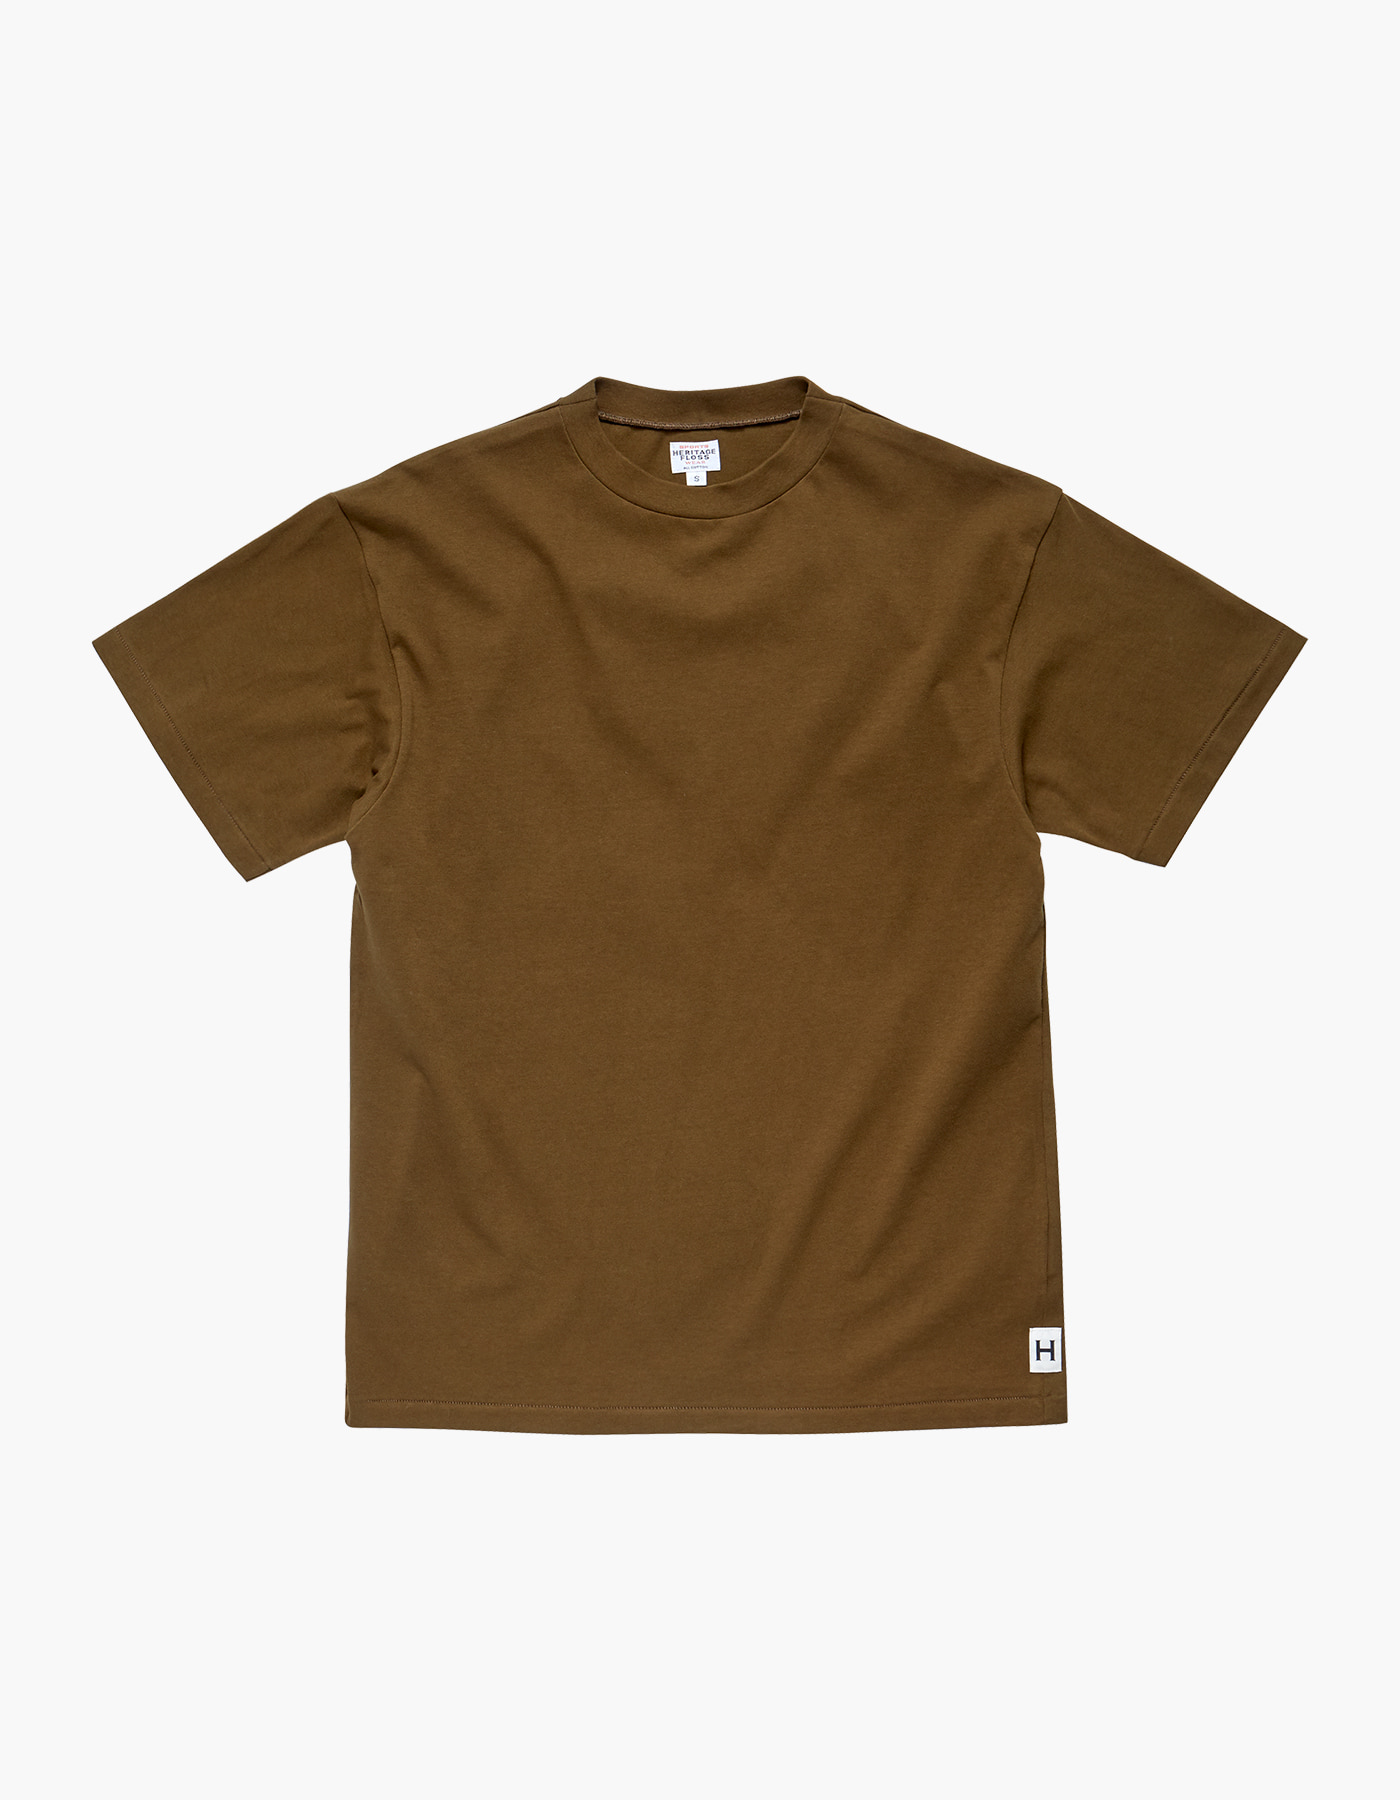 AMERICAN COTTON SINGLE T-SHIRTS / DESERT KHAKI